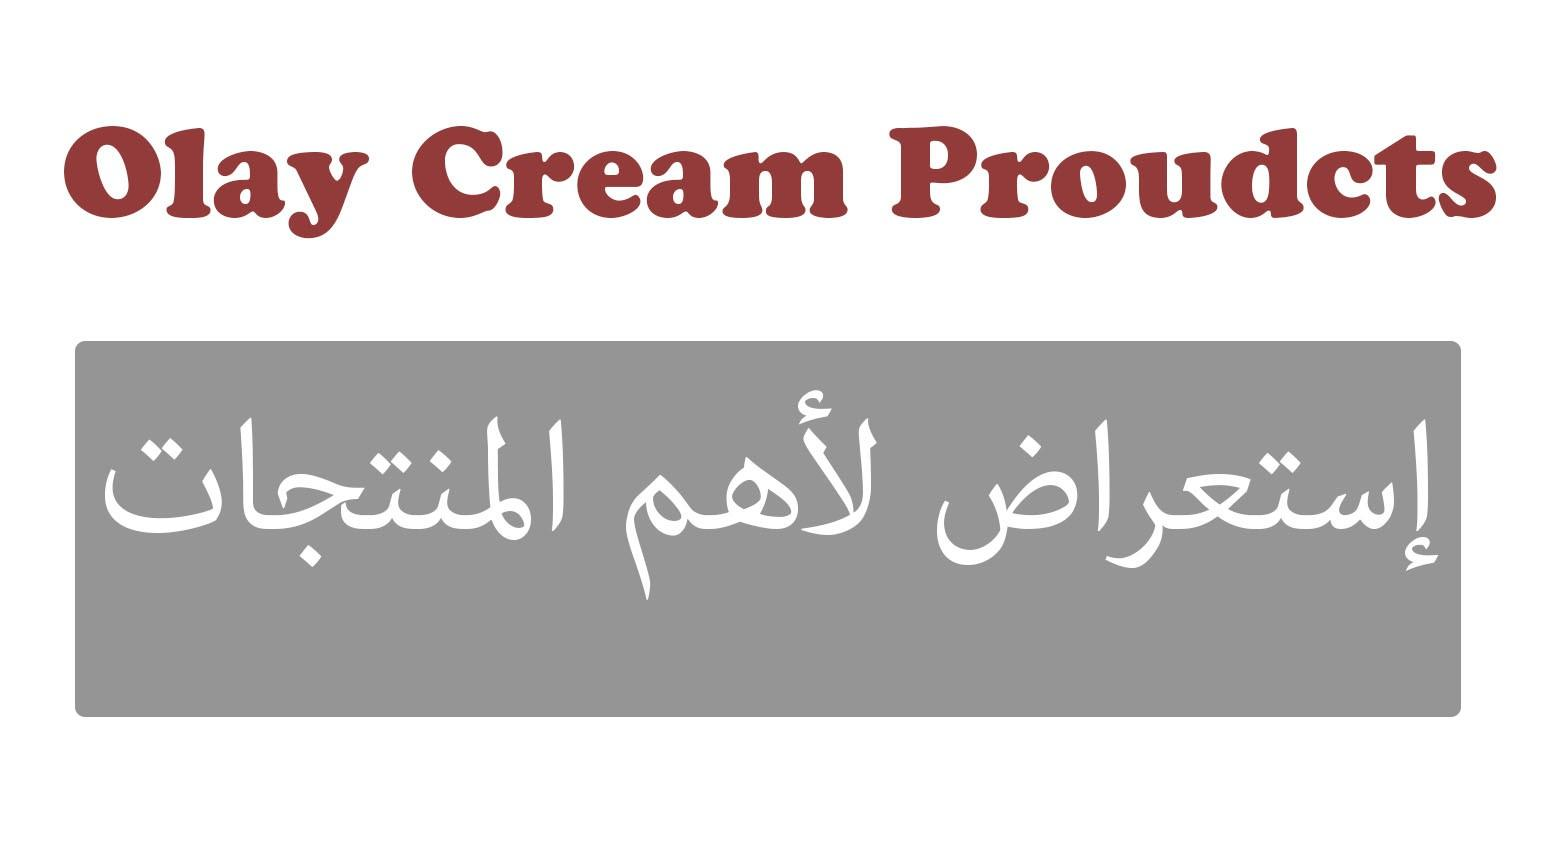 Olay Cream Proudcts